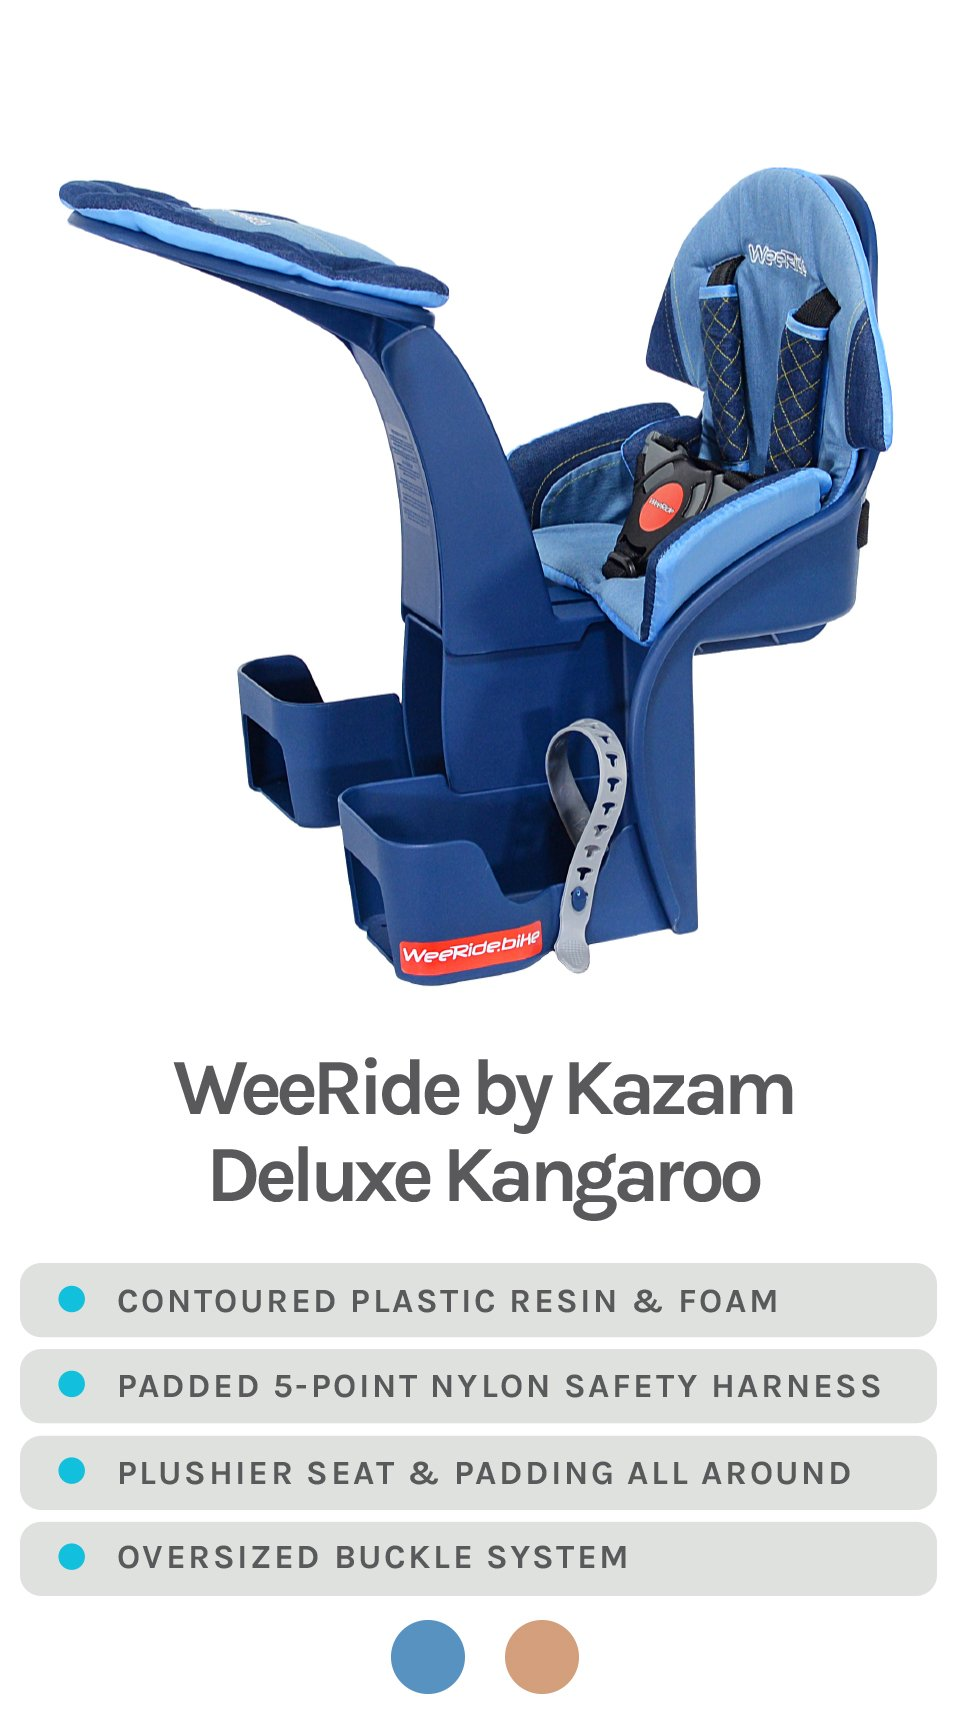 Denim Blue WeeRide by Kazam Deluxe Kangaroo Featured - Specs - Contoured plastic  resin & foam, Padded 5-point nylon safety harness, Plushier seat & padding all around, Oversized buckle system - Available Colors in Denim Blue & Camel Brown